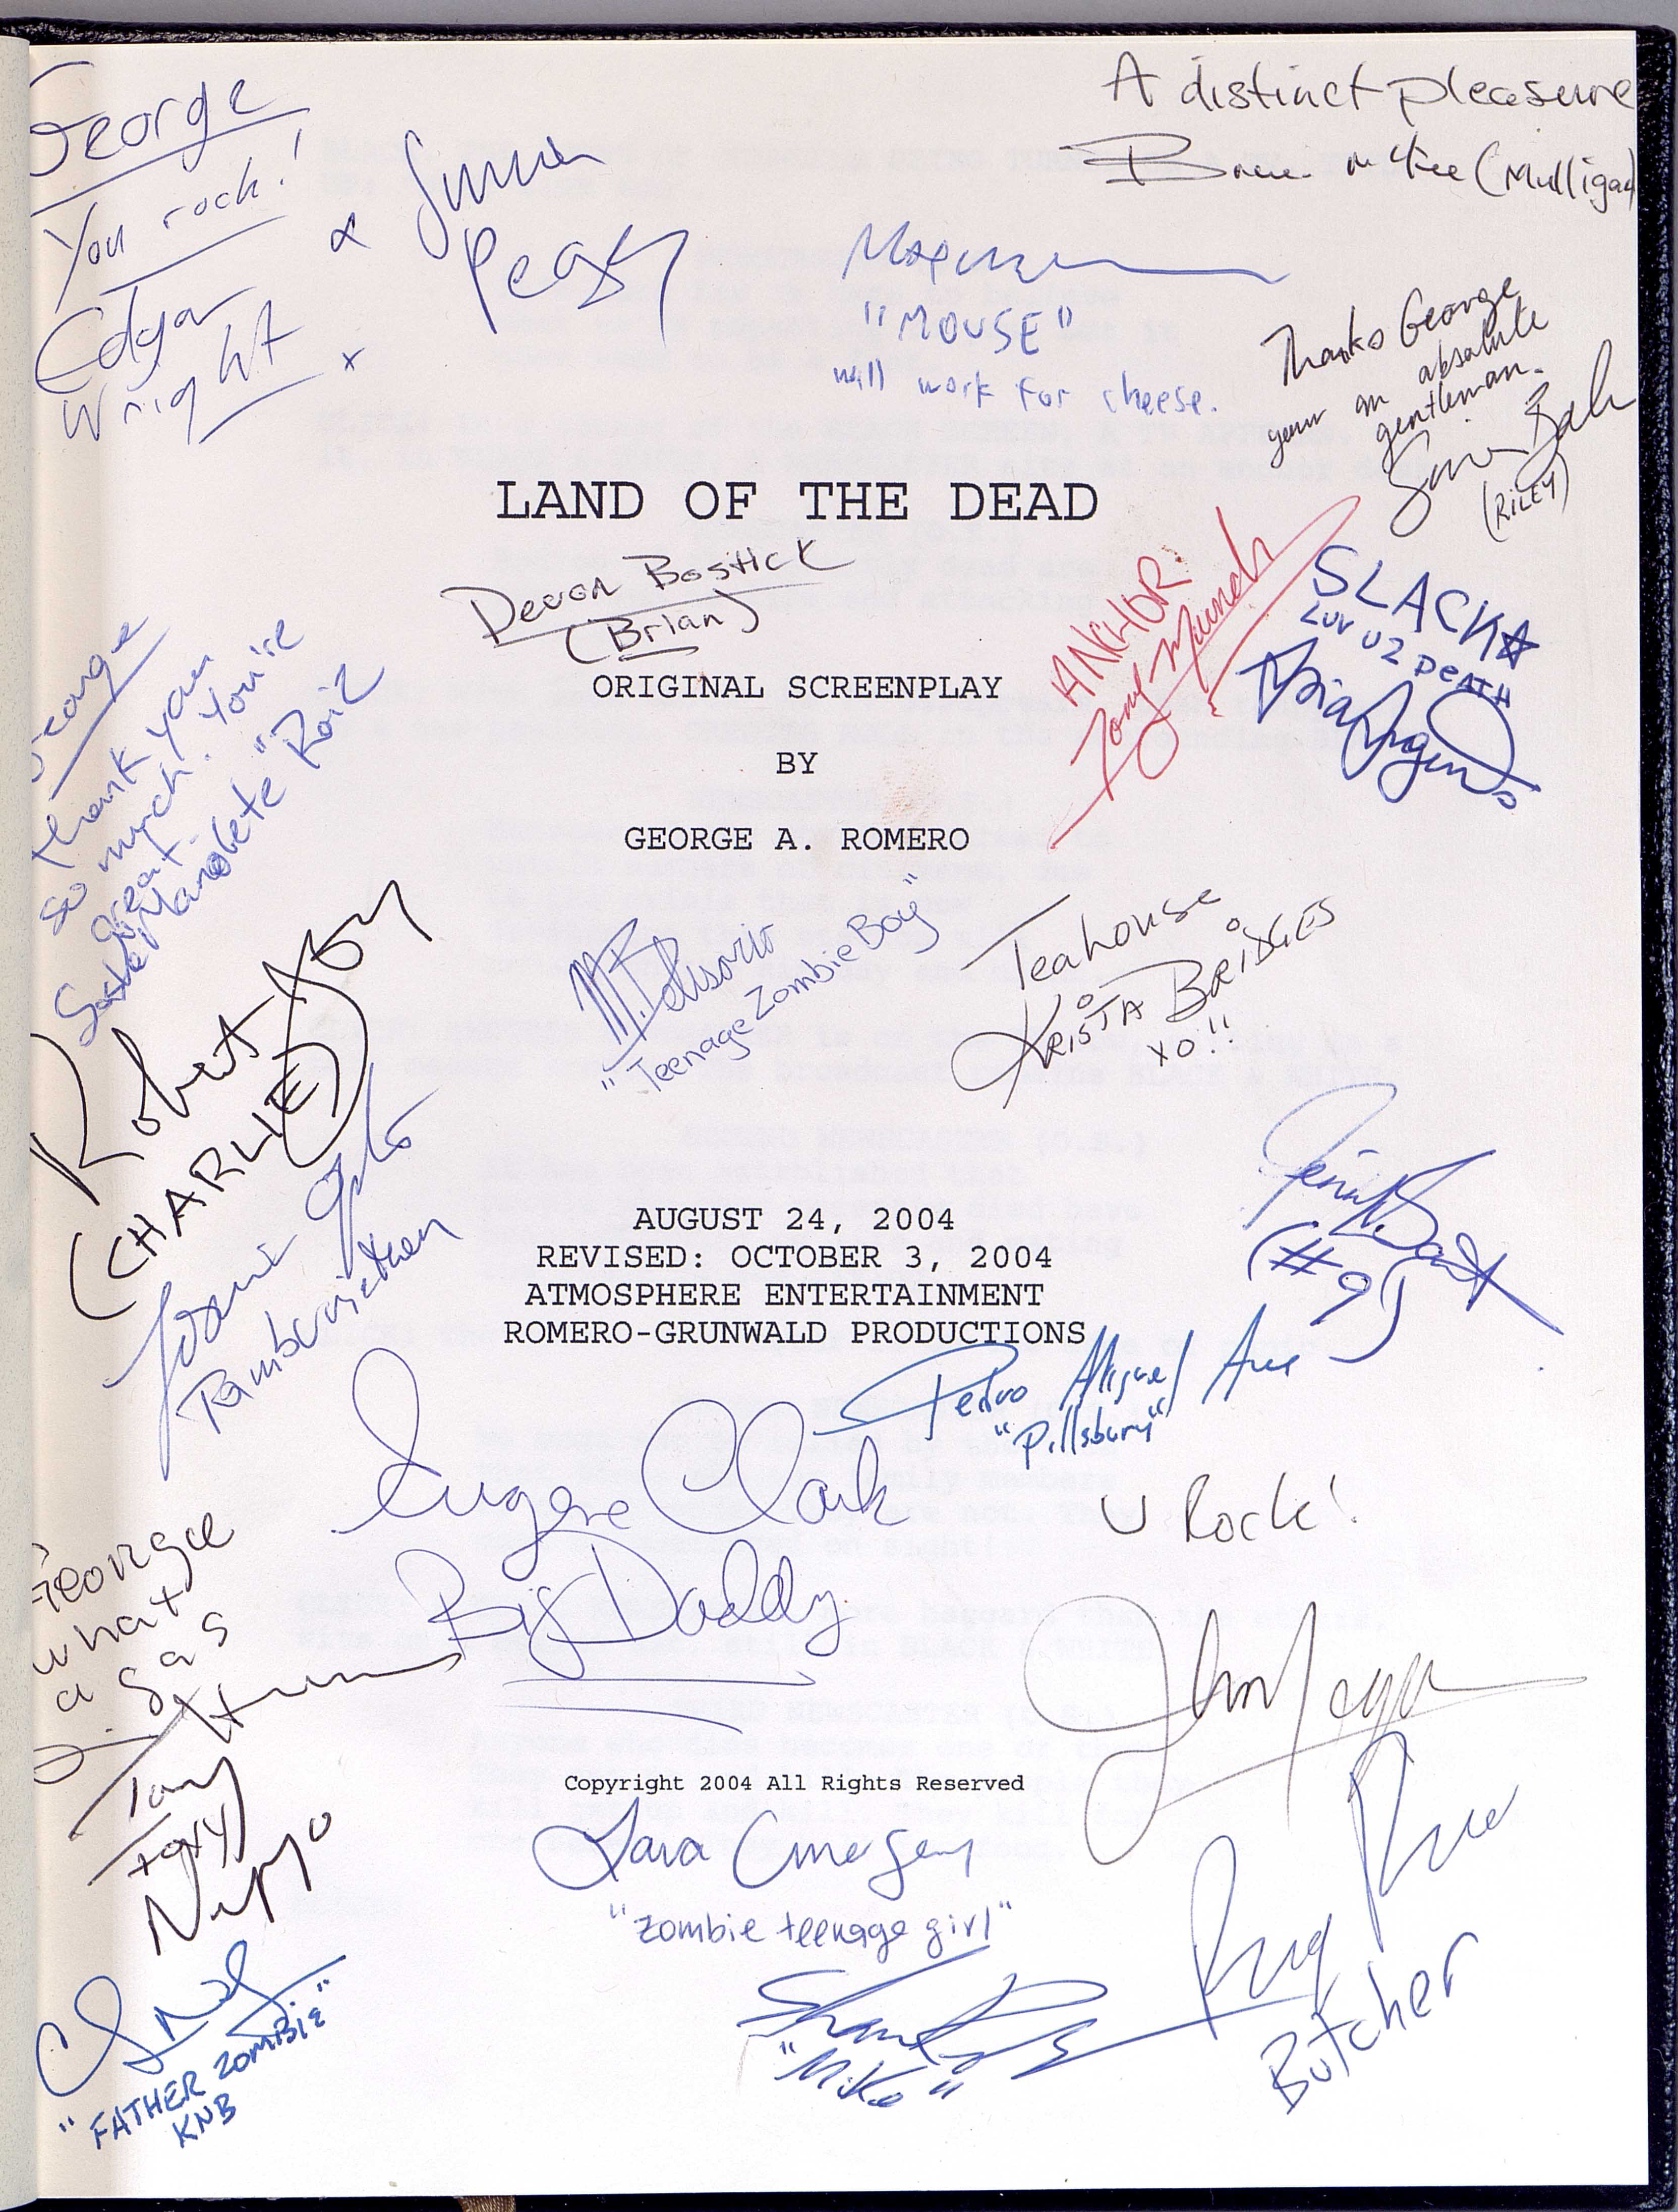 Script from Land of the Dead